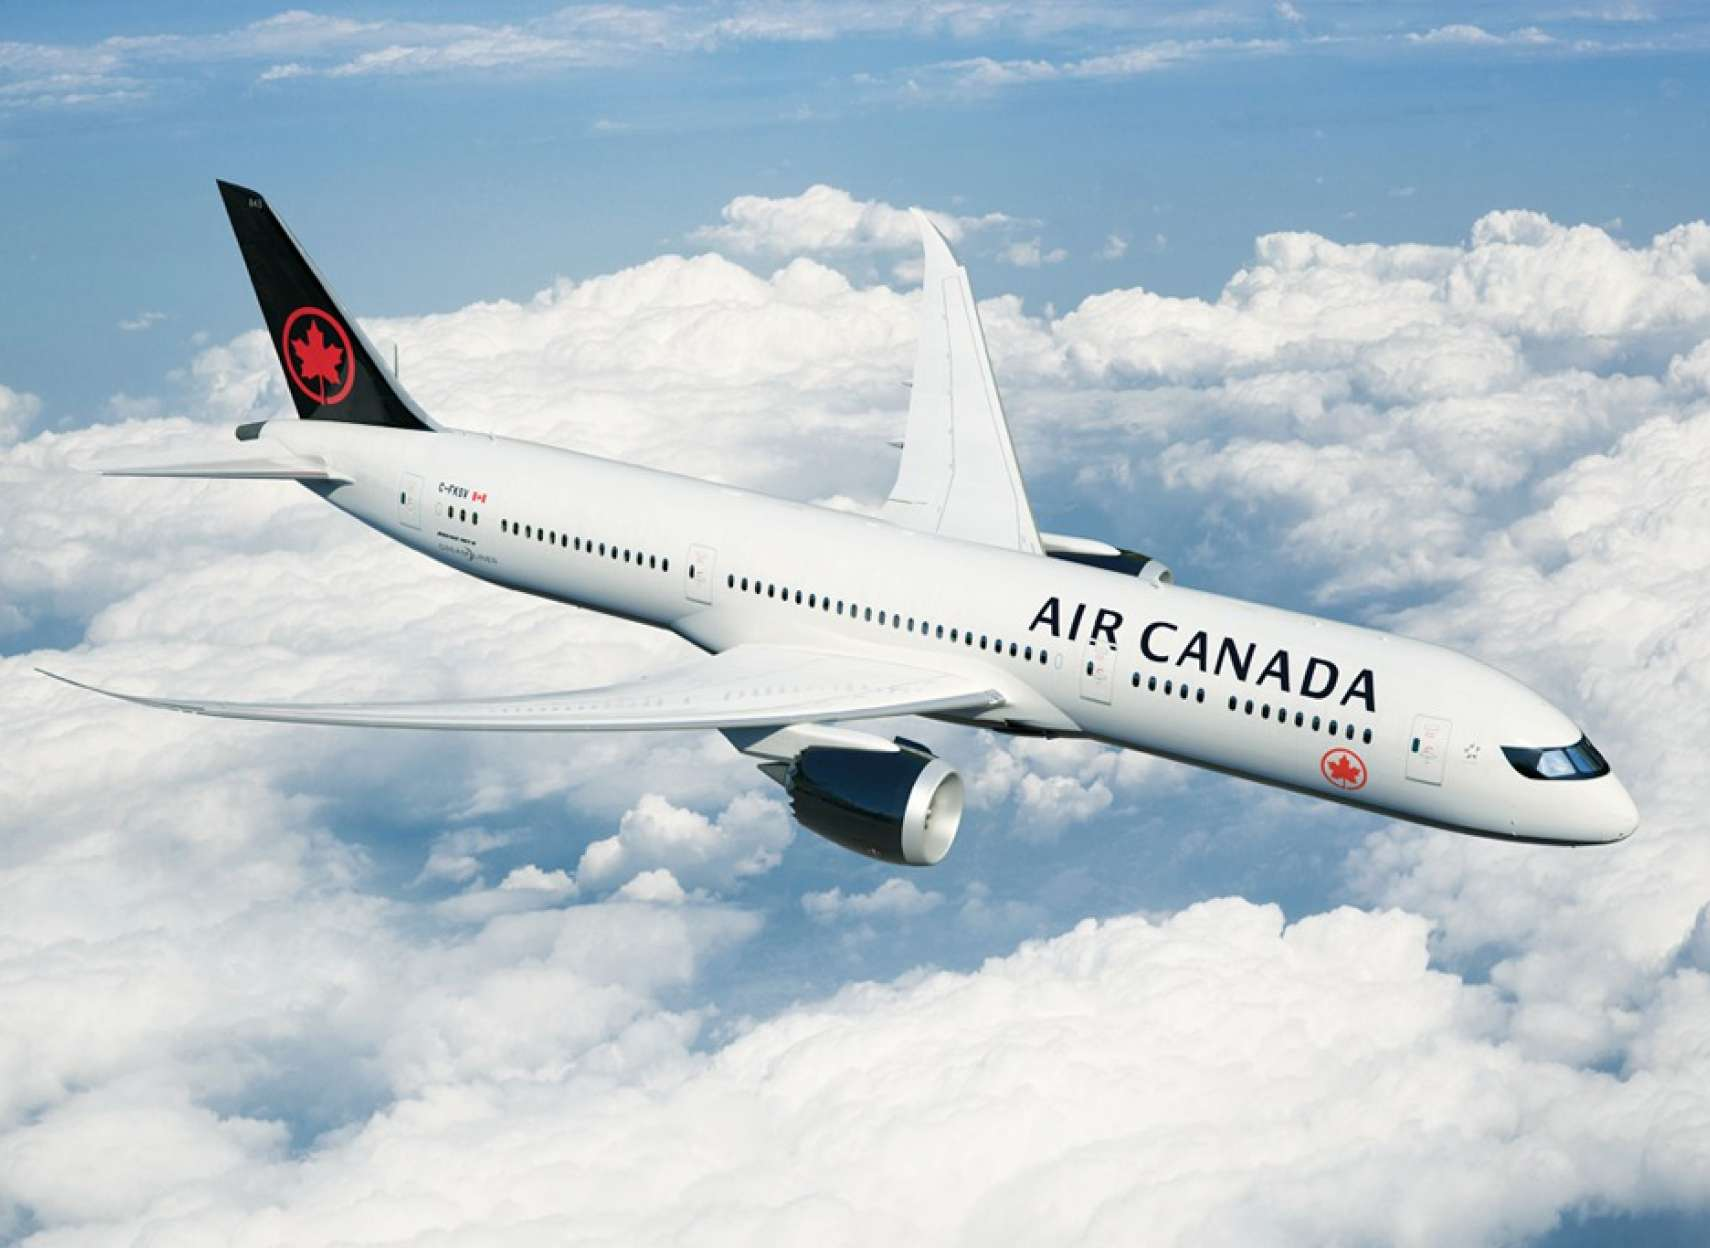 news-aircanada-prices-up